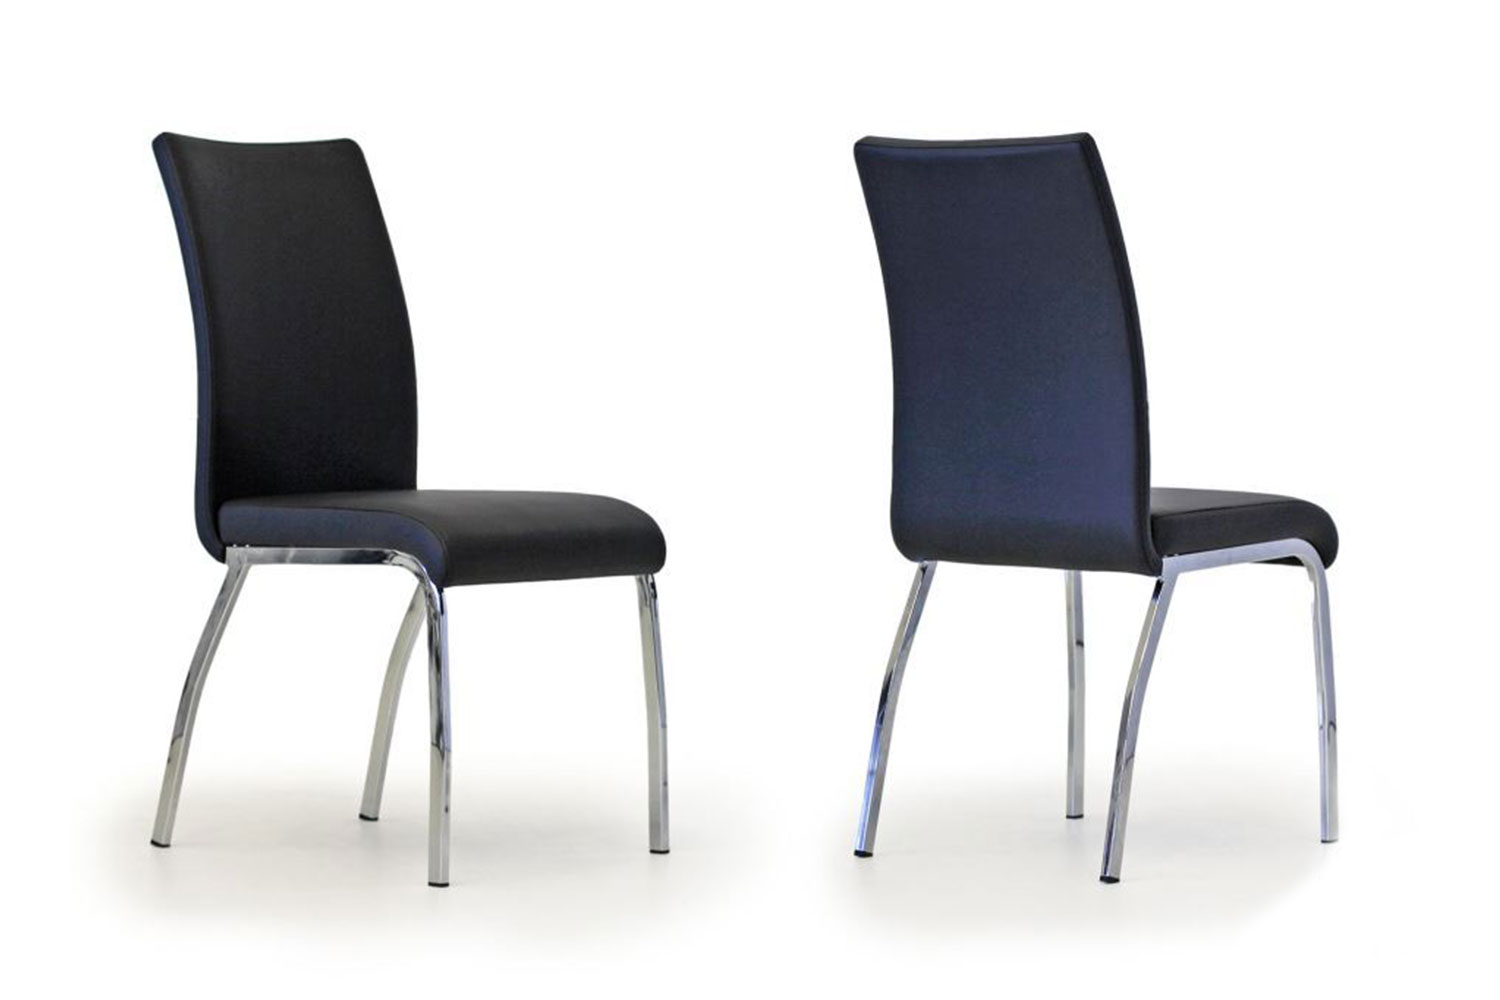 dining chairs nz used wheel chair harvey norman new zealand clooney by collage